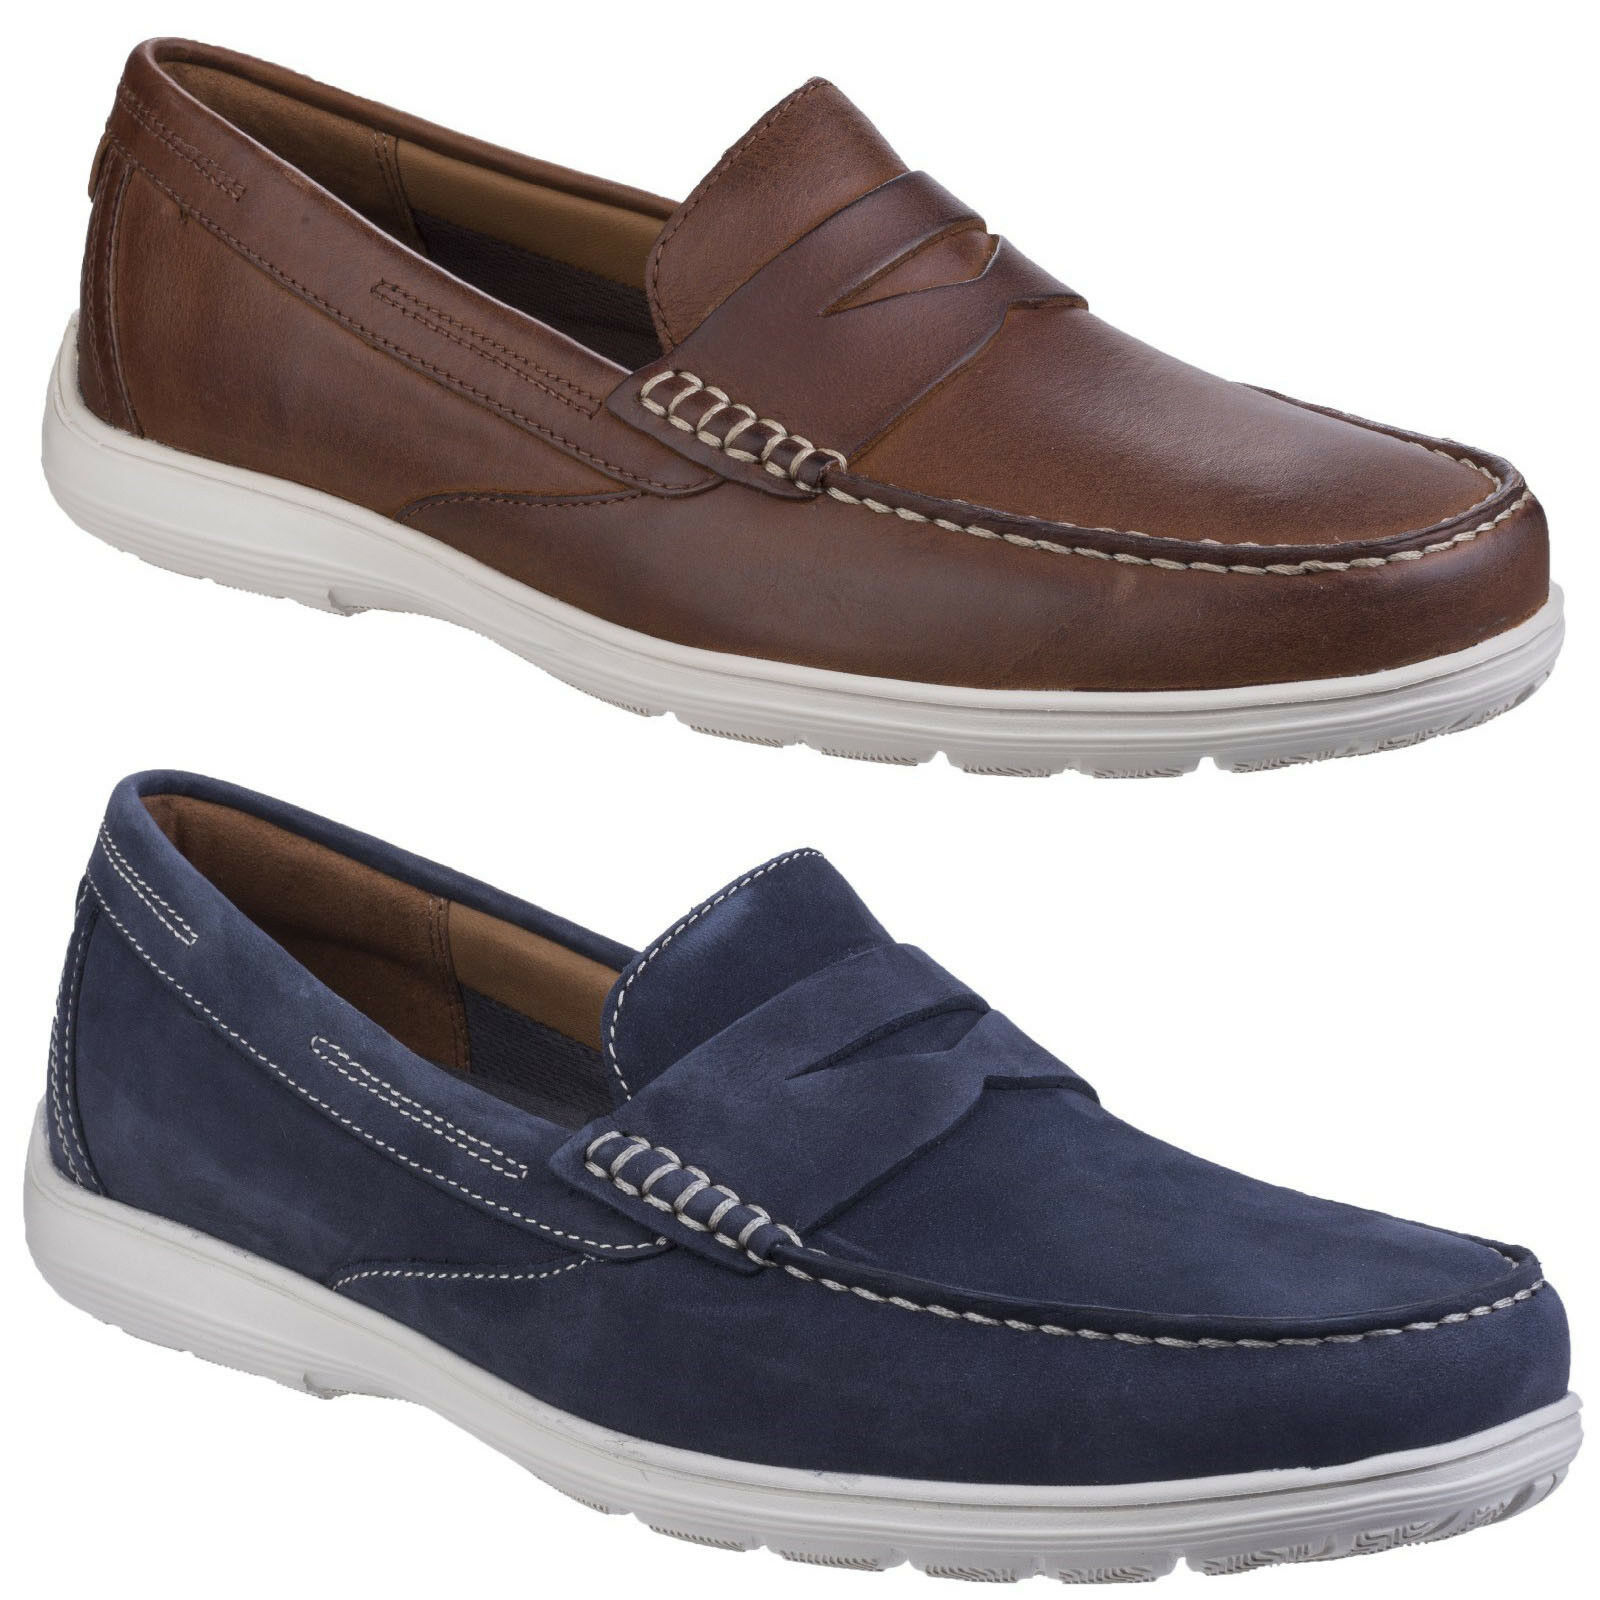 Rockport Total Motion Penny Loafer Leather Slip On Casual schuhe Mens